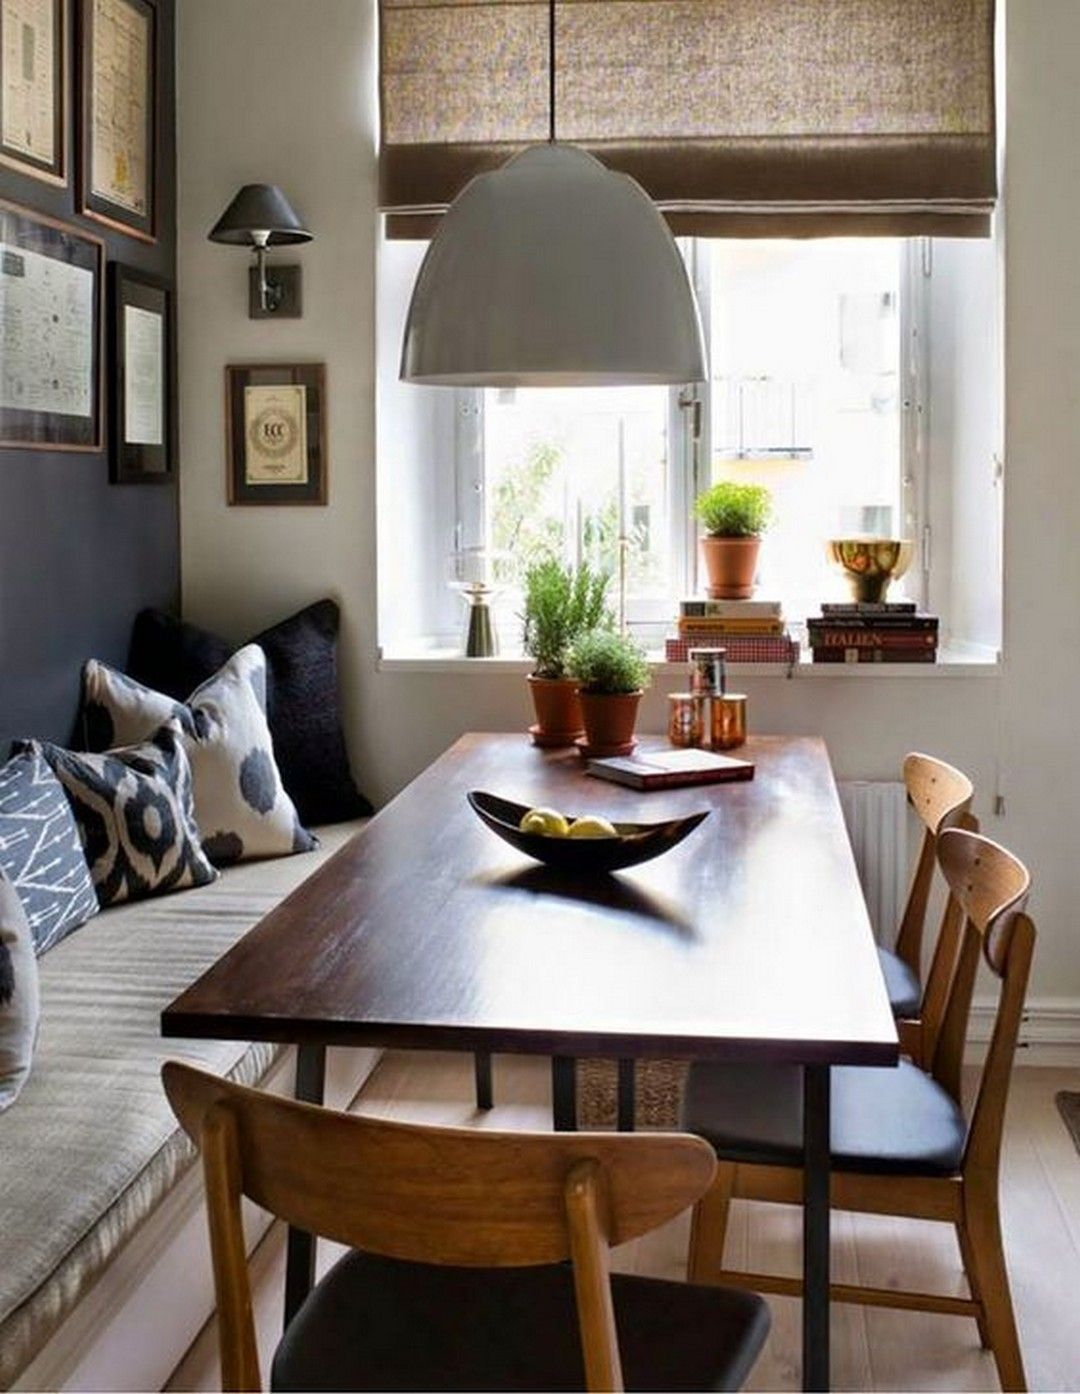 Beech and chairs around  relaxed corner dining table also be mine spaces to lovebecki owens it   on the home rh pinterest